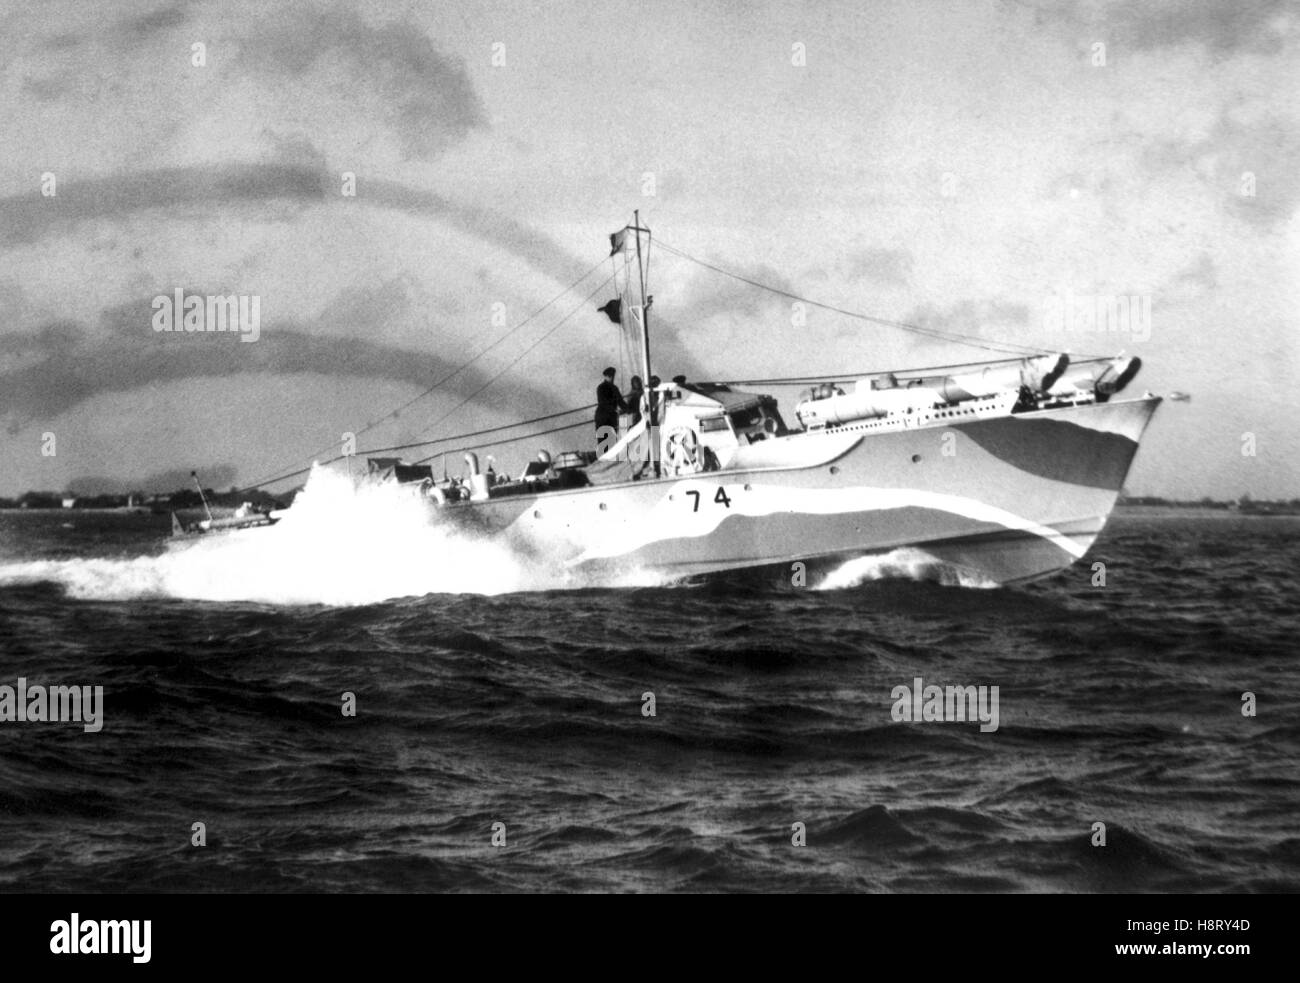 AJAX NEWS & FEATURE SERVICE. 1942. SOLENT, ENGLAND. - OPERATION CHARIOT MTB - THE VOSPER SERIES TWO MOTOR TORPEDO - Stock Image